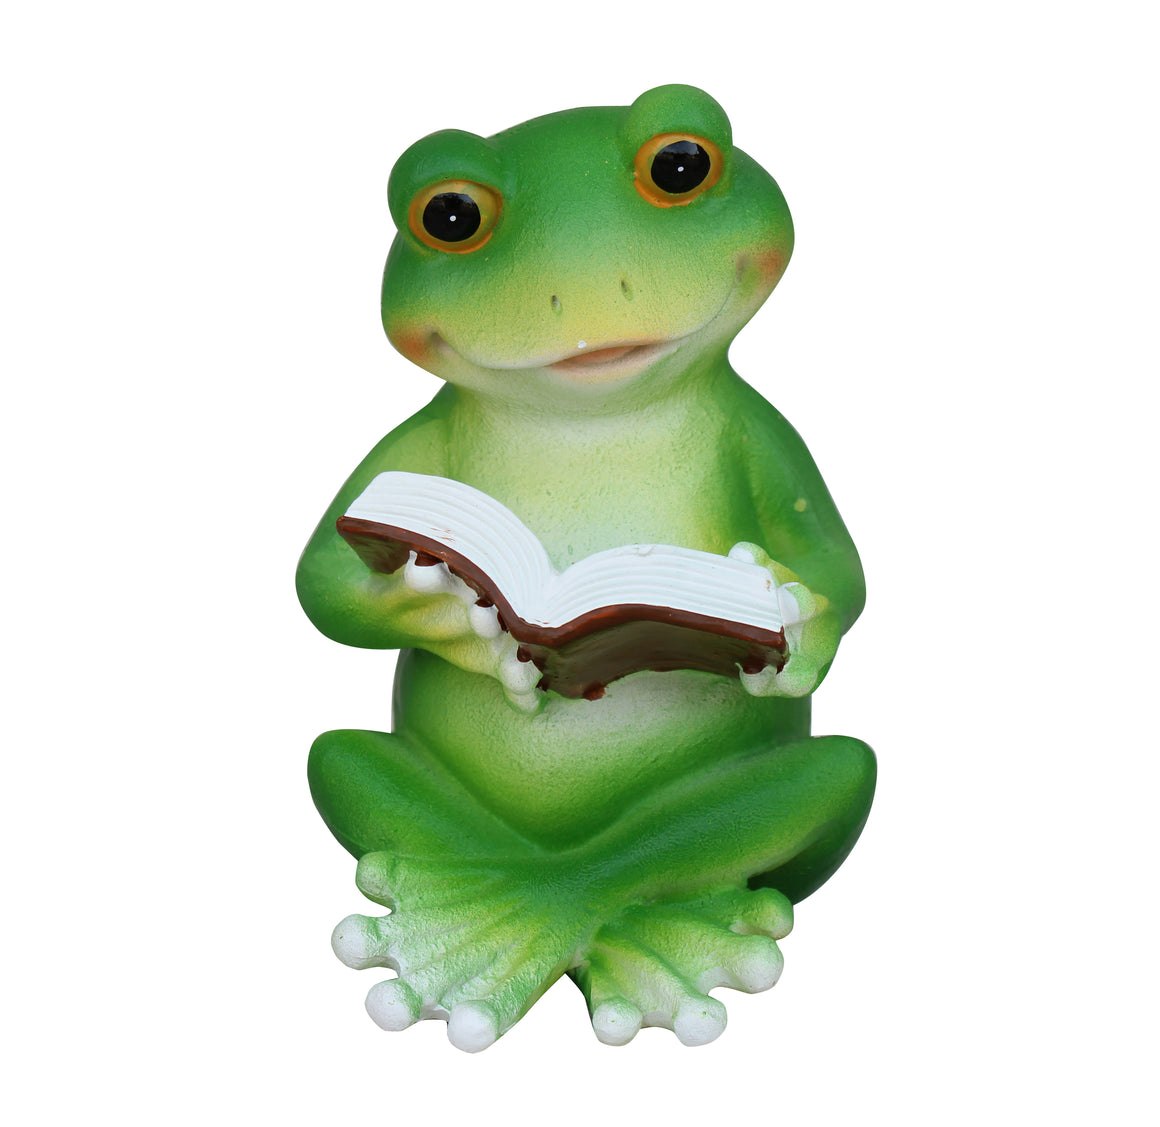 Frog Reading Book Figurine, Terrace Miniature Statue, Cute Toad Ornament, Outdoor Decor, Garden and Lawn Statue. DM425A